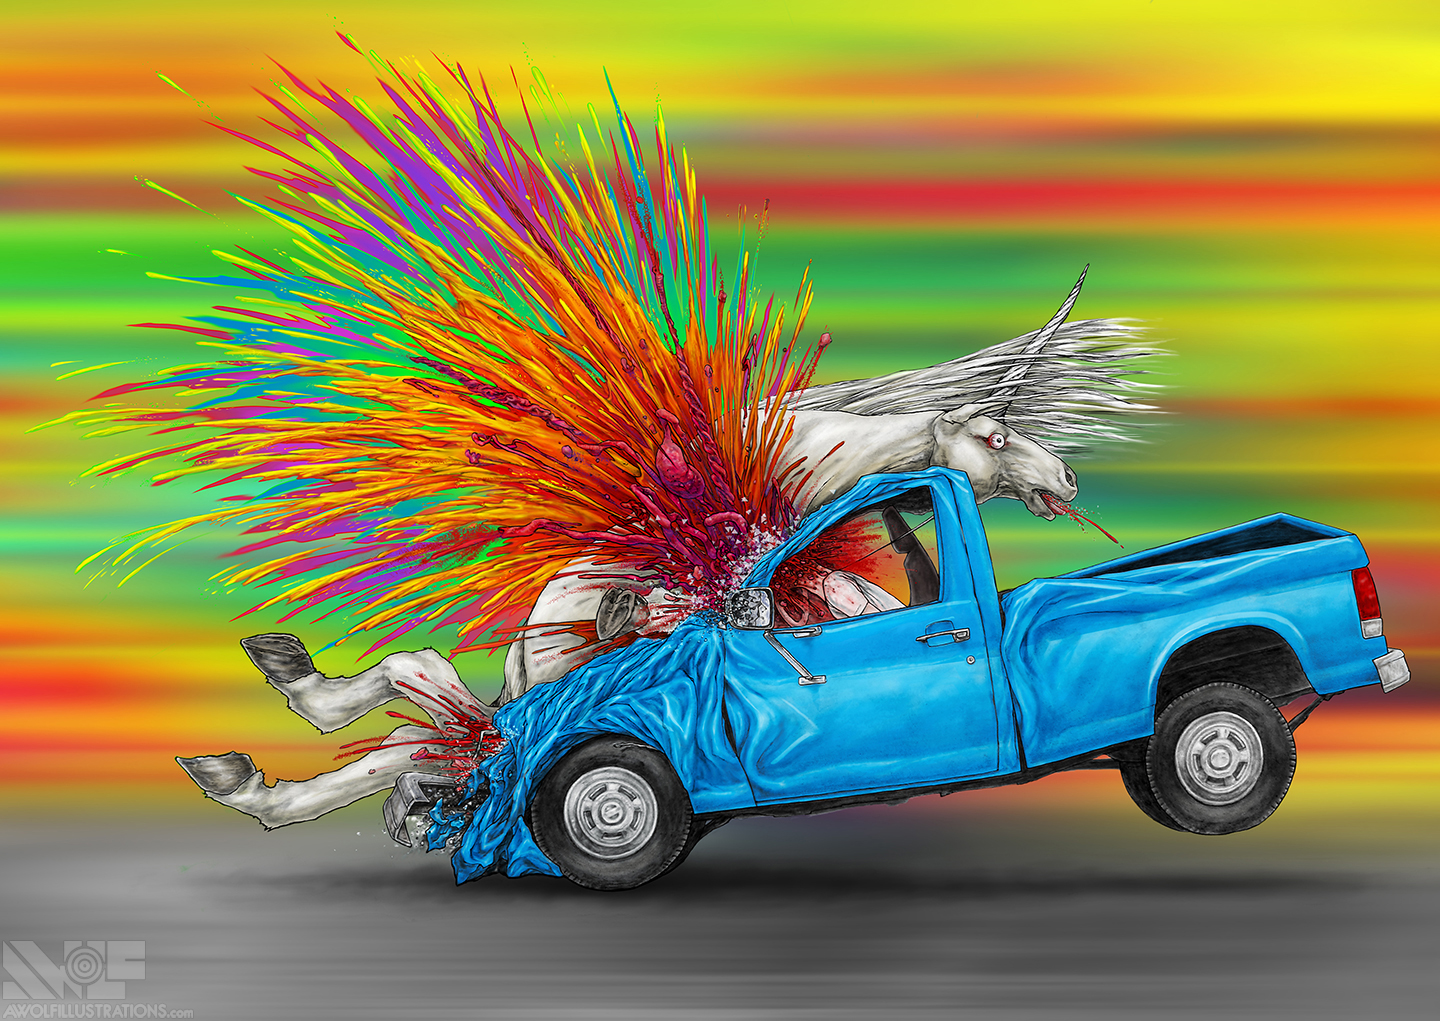 A colourful, rainbow digital illustration of a hyper violent collision between a unicorn and an old Ford pickup truck.